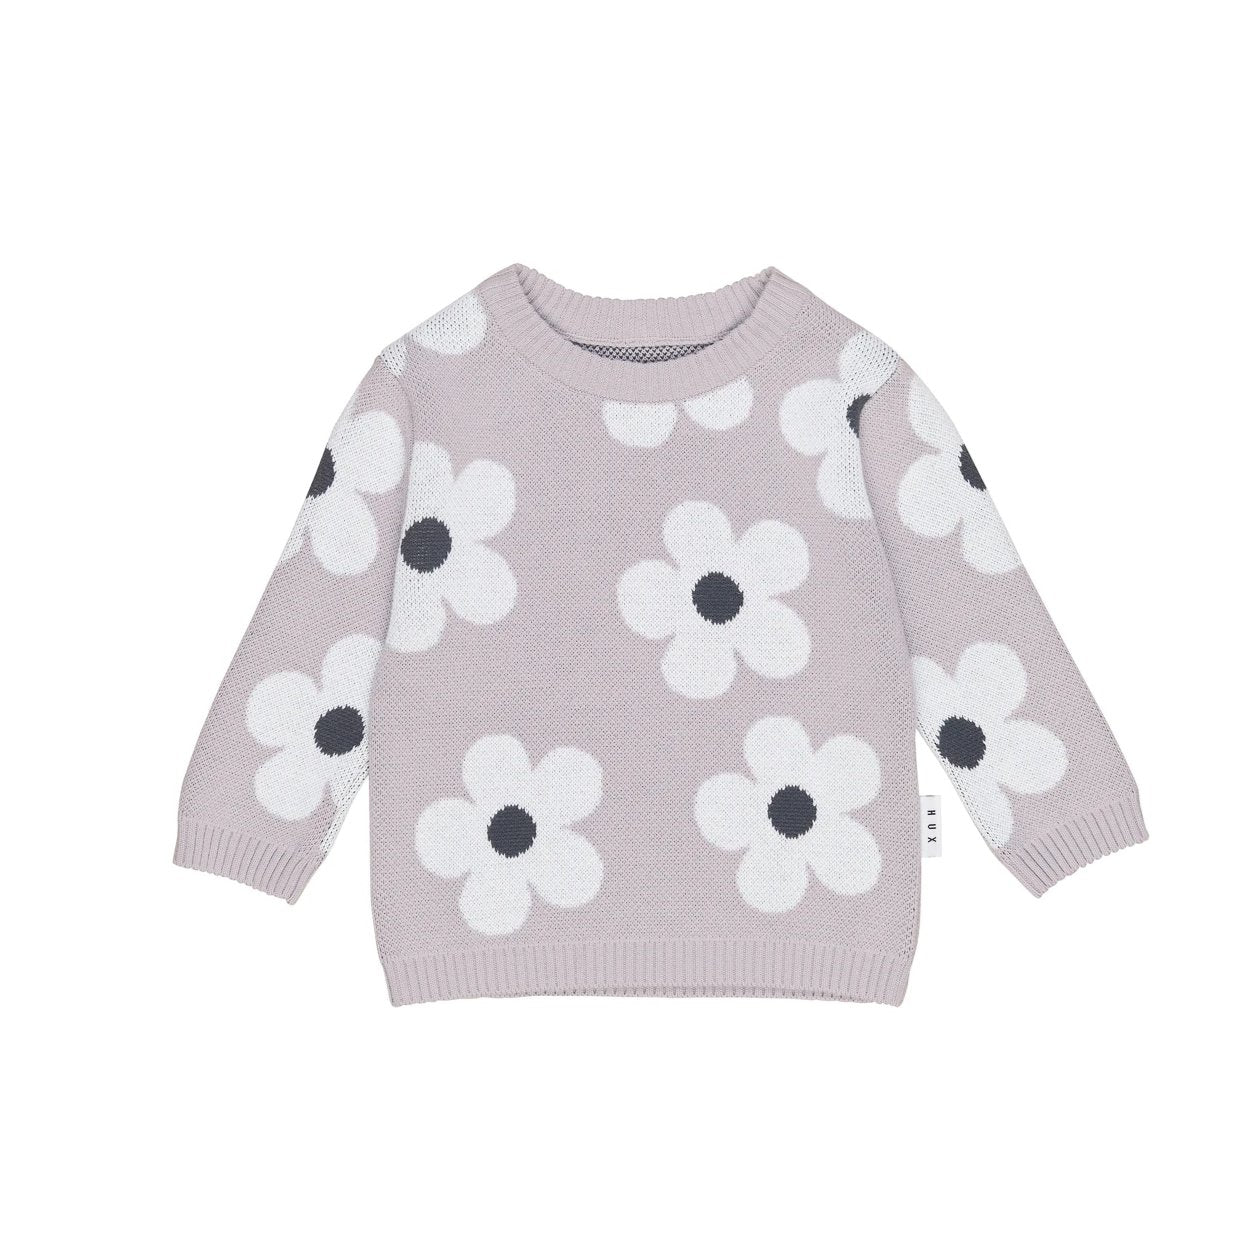 Huxbaby Organic Cotton Floral Knit Jumper - Front Flat